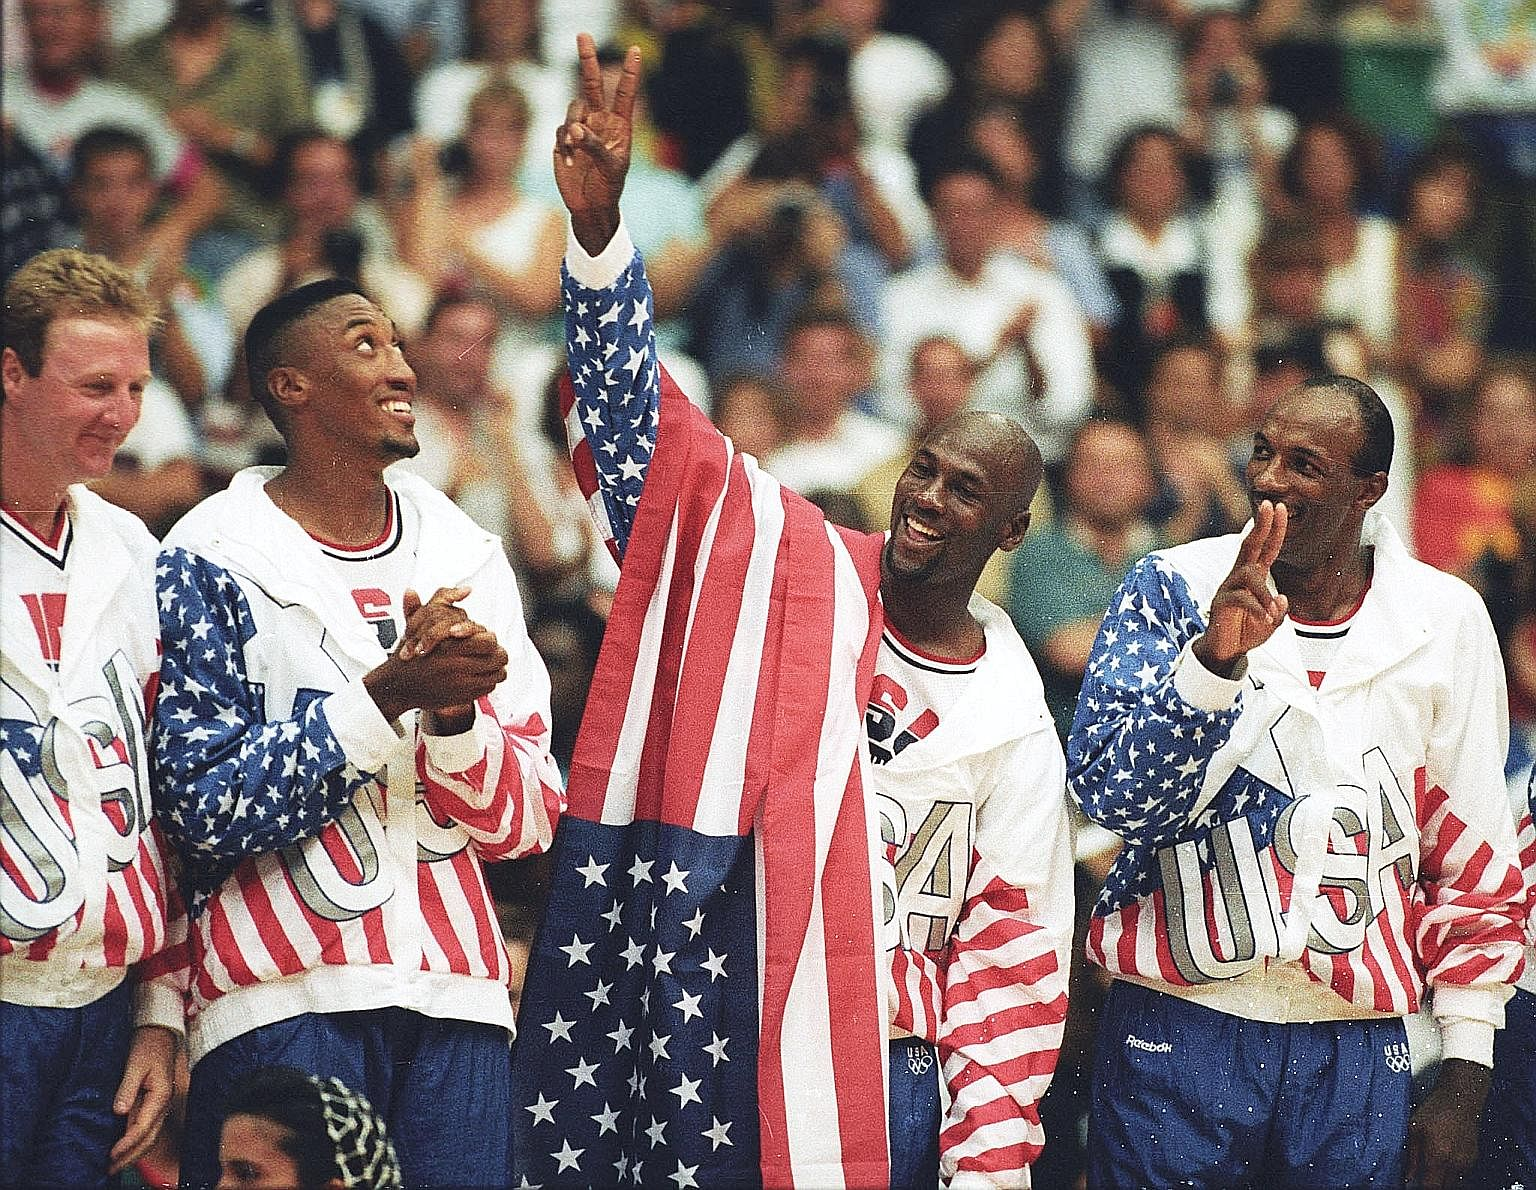 American basketball player Michael Jordan (draped with flag) flashes a victory sign as he stands with teammates (from left) Larry Bird, Scottie Pippen and Clyde Drexler. They were nicknamed the Dream Team after winning the Olympic gold in Barcelona, Spain